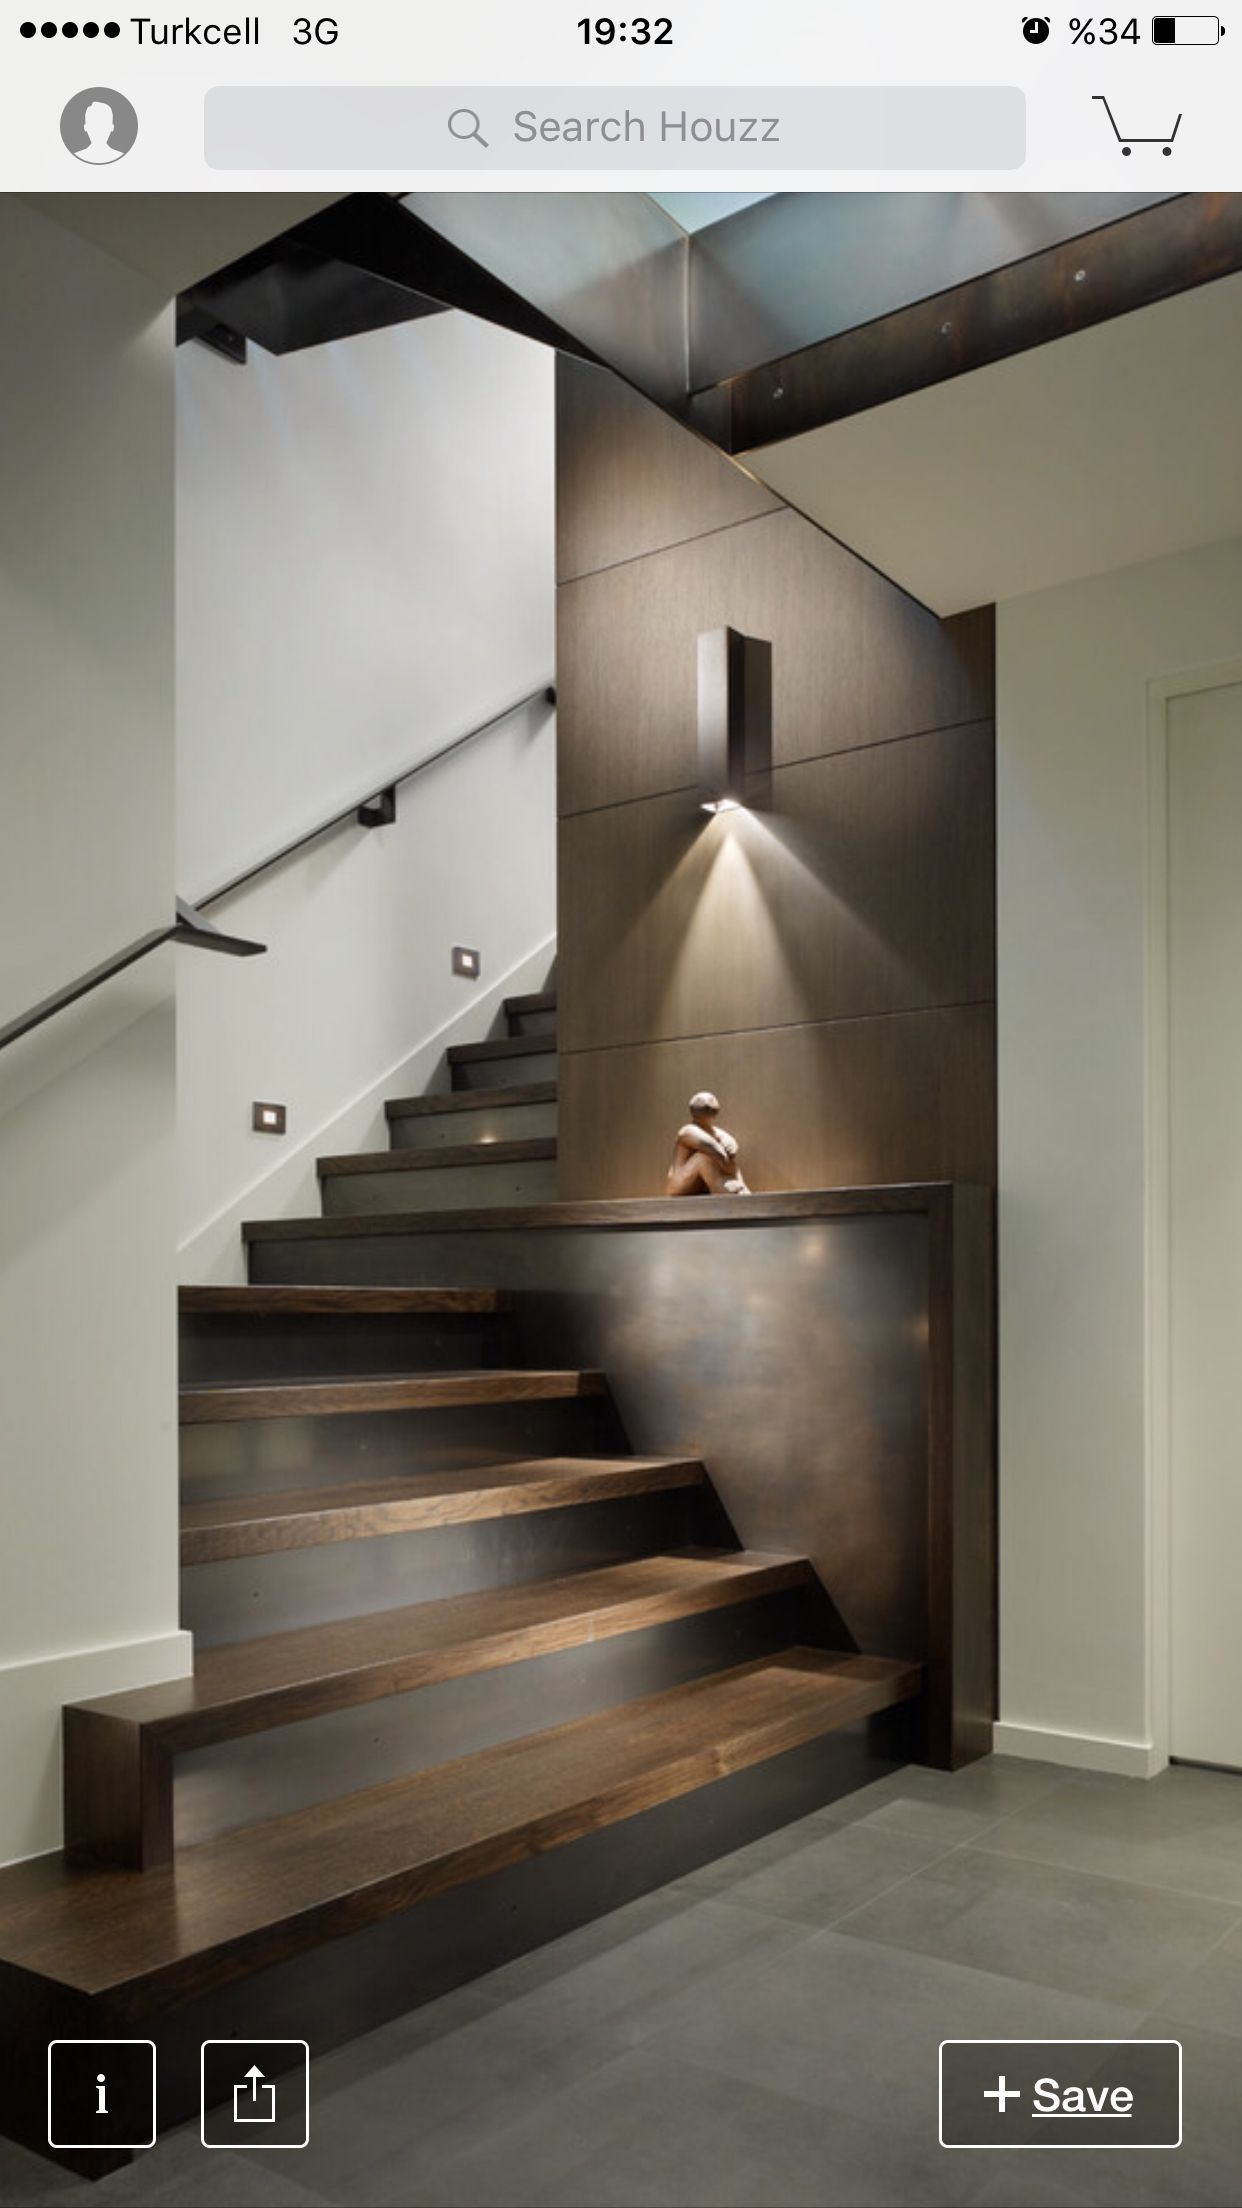 Decoration Montee Escalier Photos Decoration Montee Escalier Photos Excellent Ides Pour